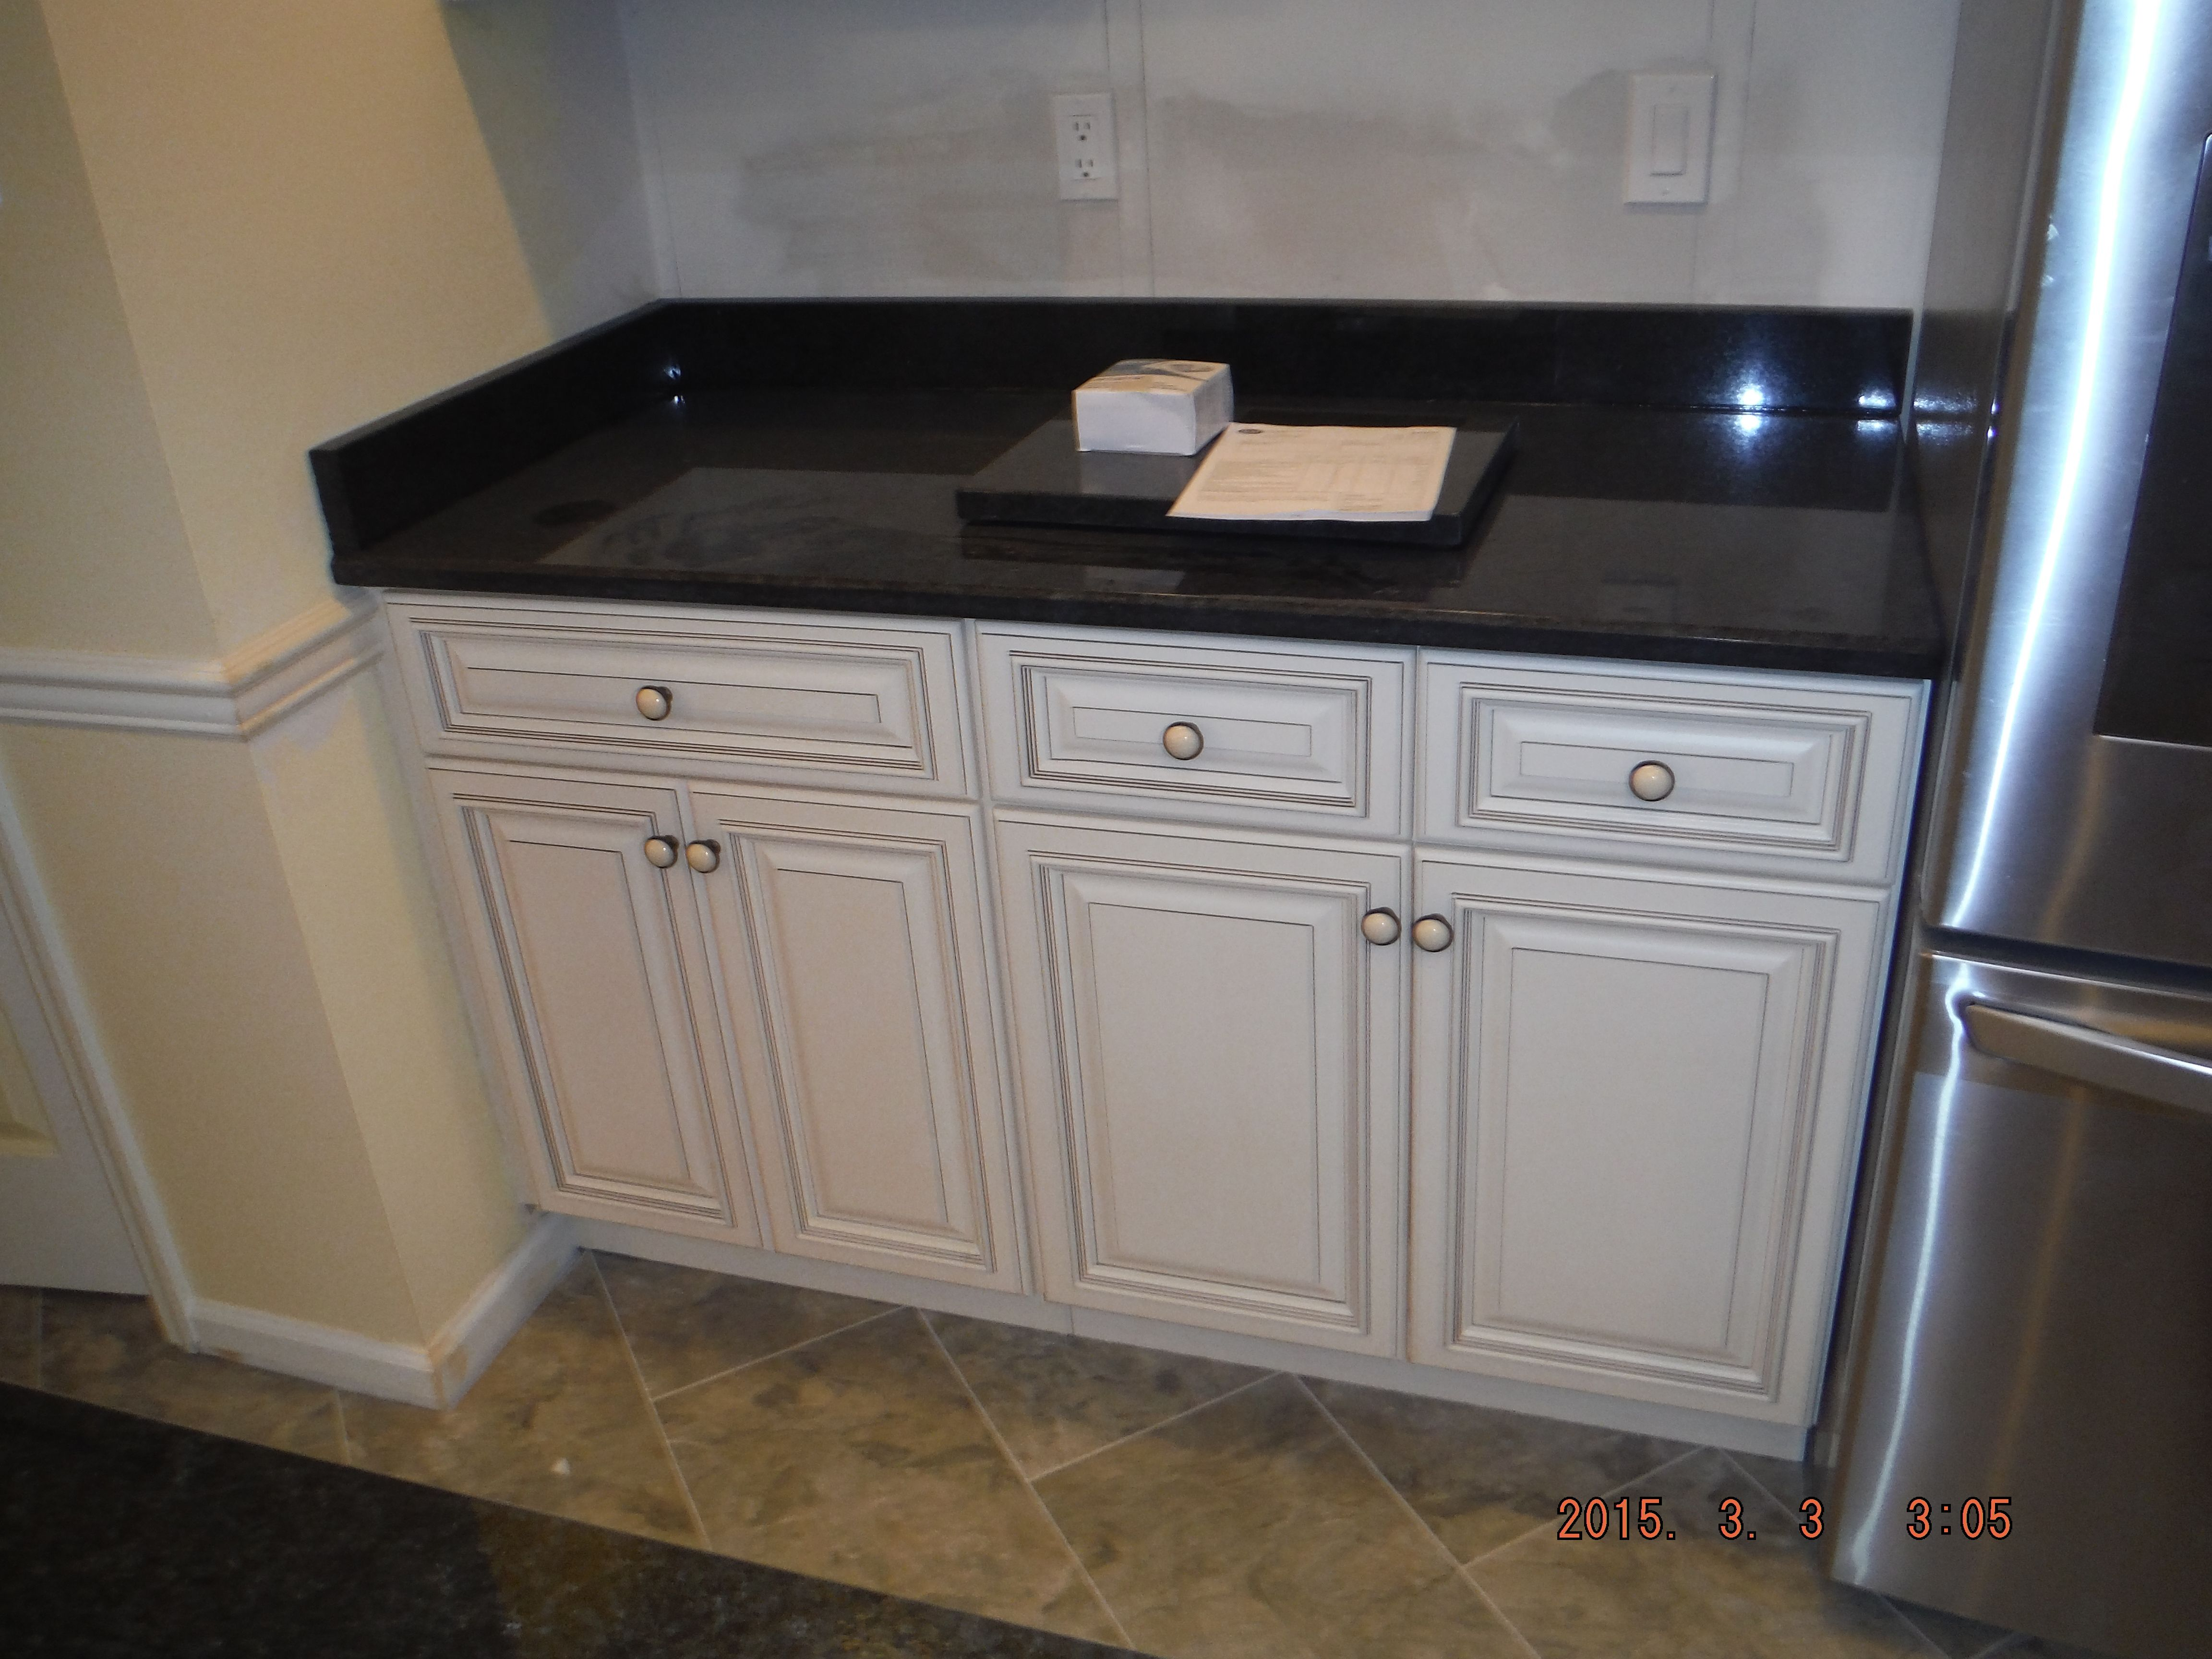 Black Pearl Granite Kitchen Countertops For The Czyzewski Family!  Knoxvilleu0027s Stone Interiors. Showroom Located